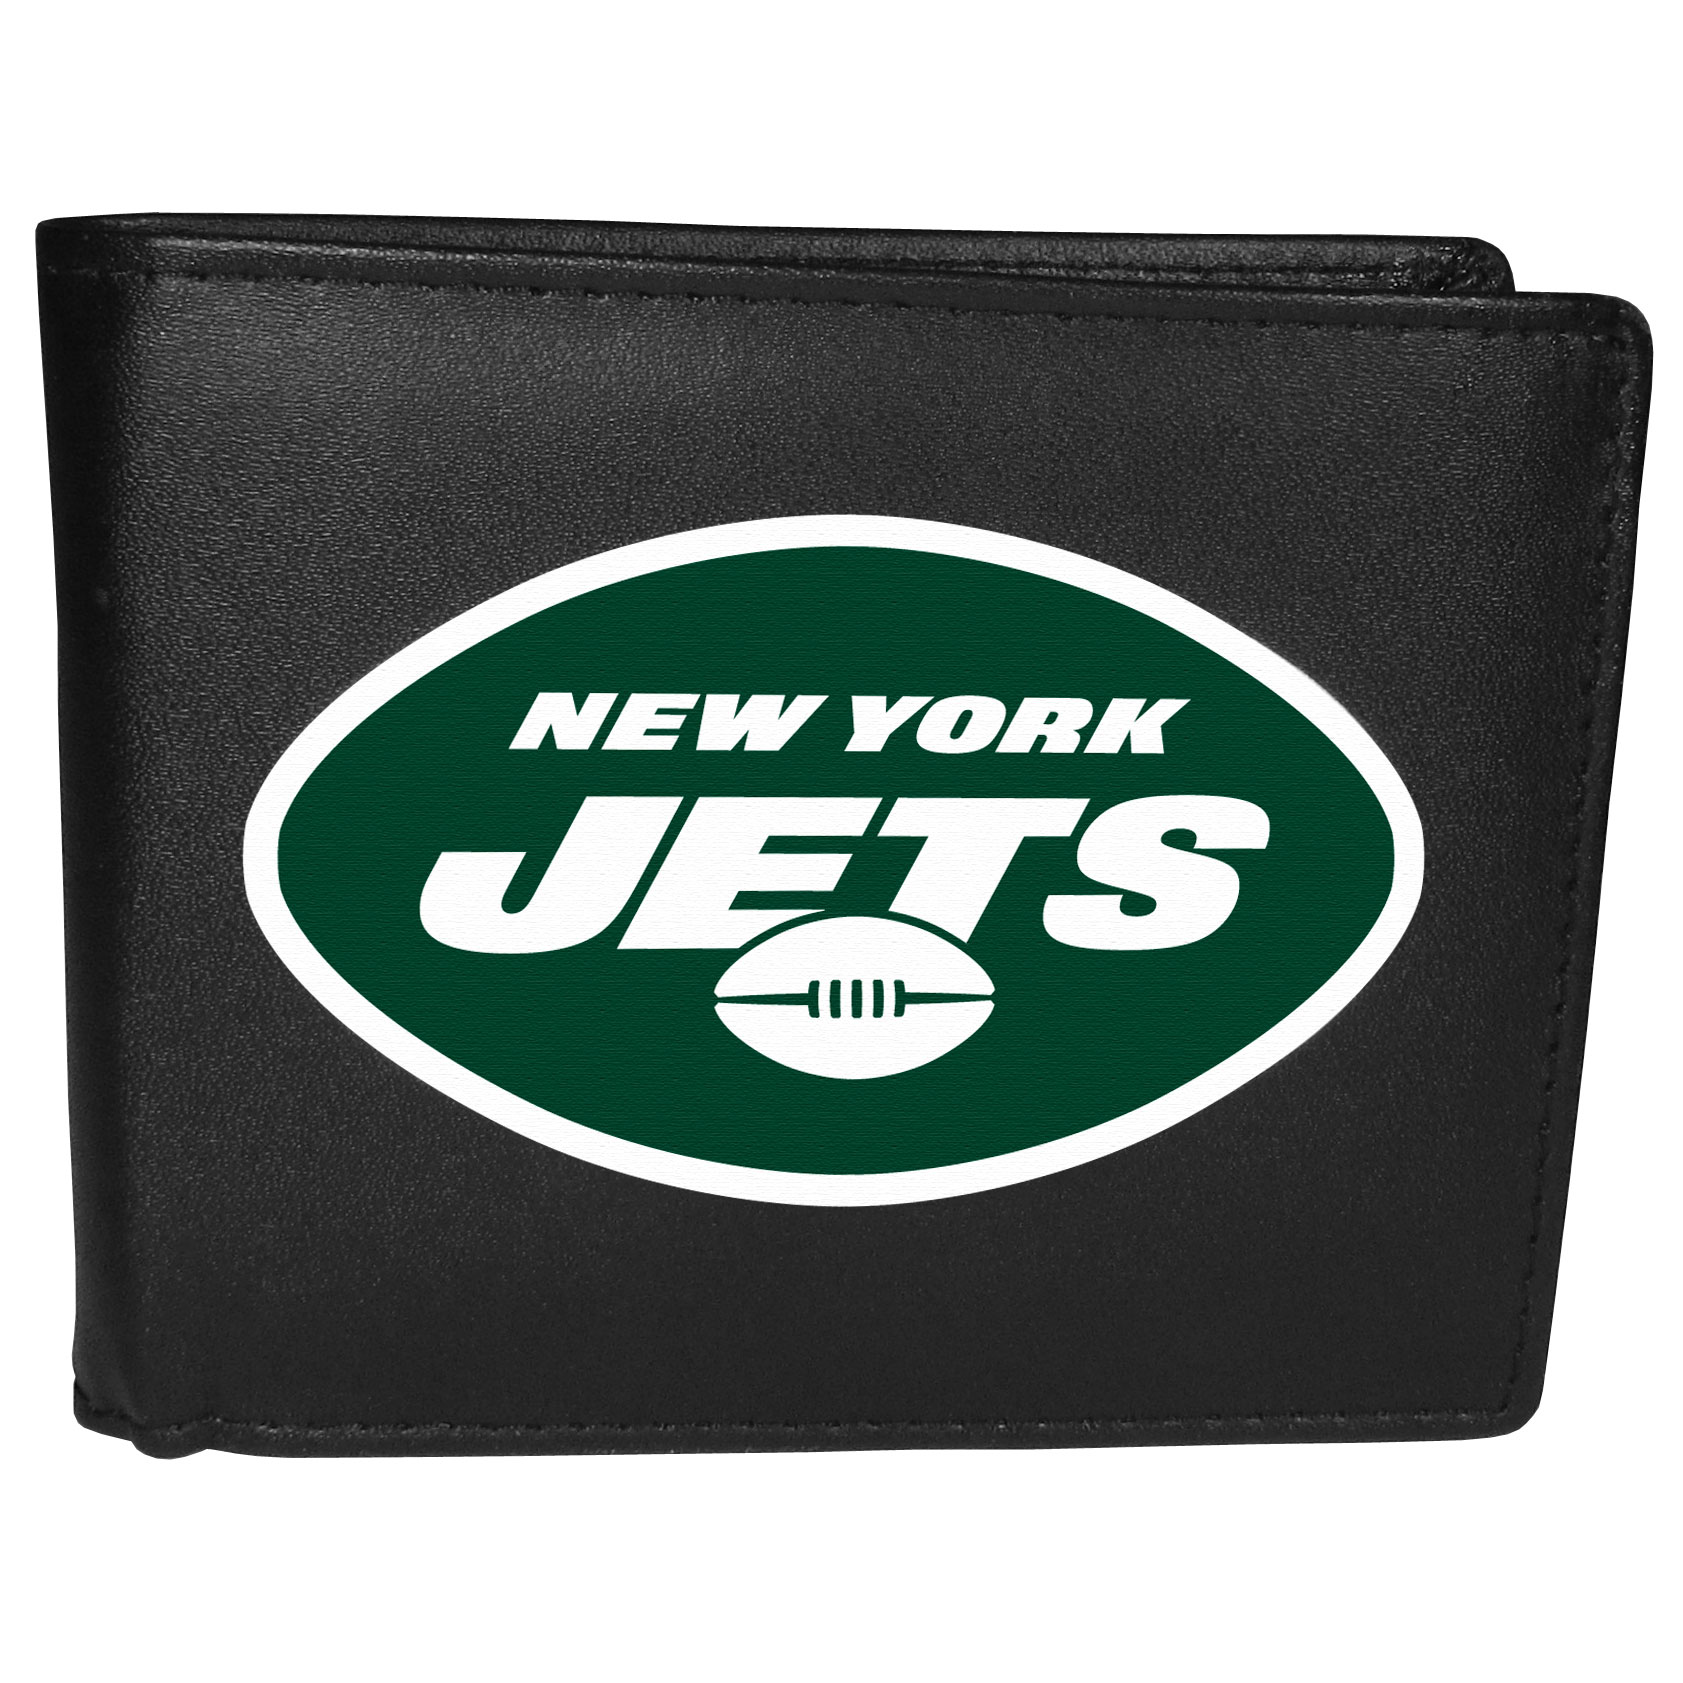 New York Jets Leather Bi-fold Wallet, Large Logo - Our classic fine leather bi-fold wallet is meticulously crafted with genuine leather that will age beautifully so you will have a quality wallet for years to come. The wallet opens to a large, billfold pocket and numerous credit card slots and has a convenient windowed ID slot. The front of the wallet features an extra large New York Jets printed logo.